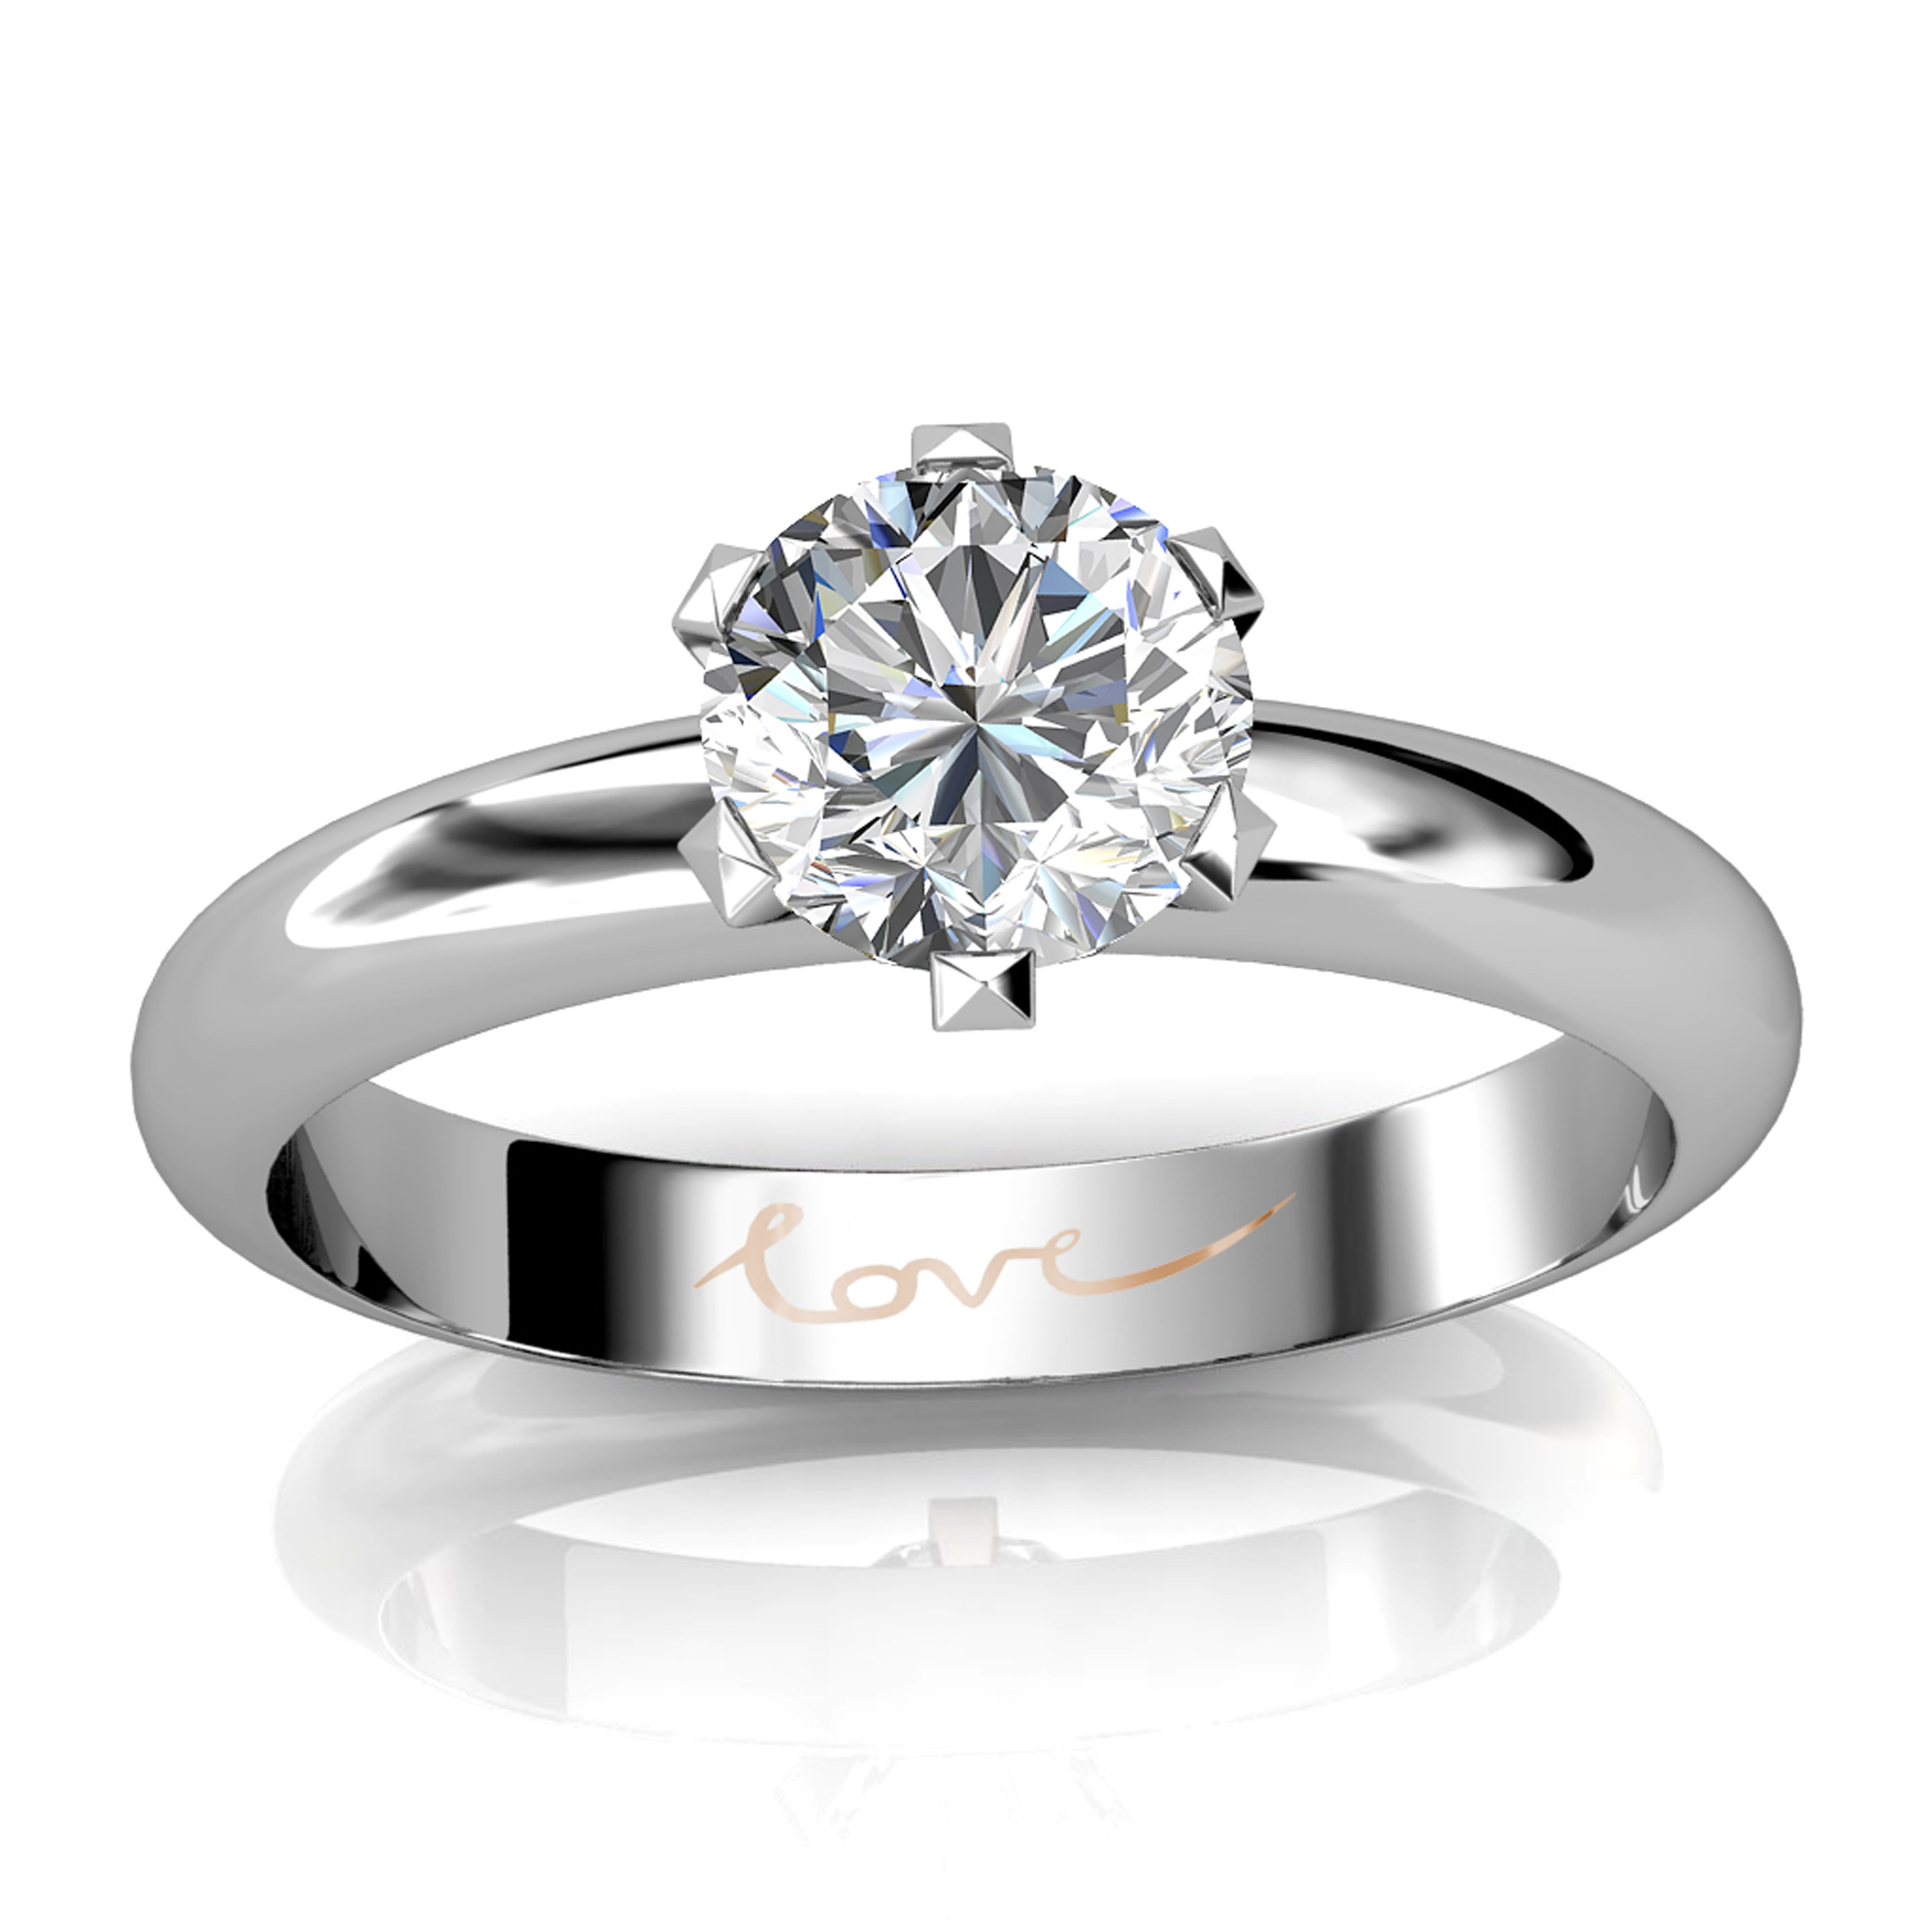 Highest Quality, Best Price, NZ Diamond Rings and Engagement Rings ...